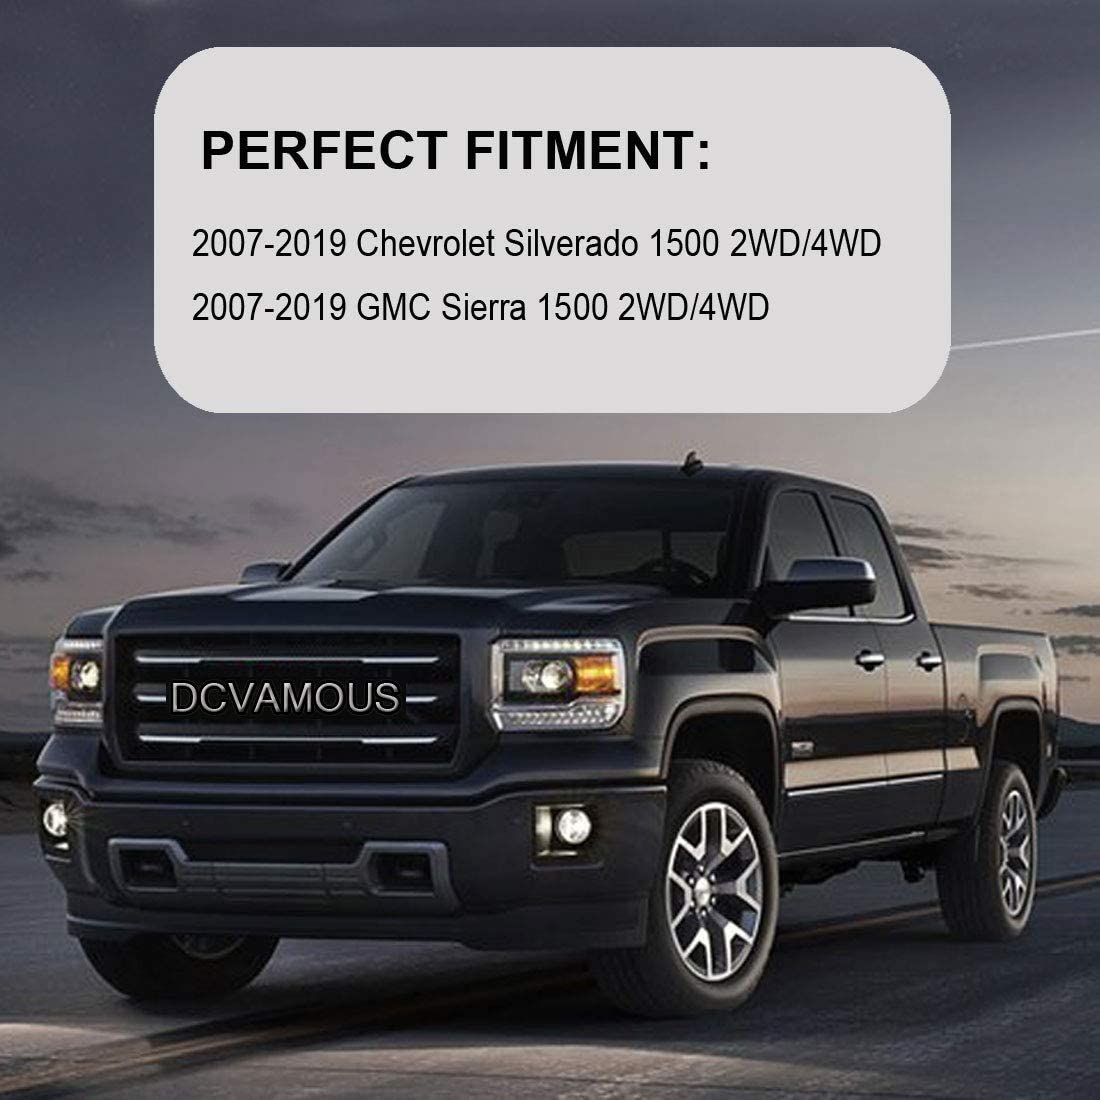 Compatible with 1999-2020 Silverado//Sierra 1500 2WD 4WD Raise Vehicle 1 Inch DCVAMOUS Leveling Lift Kit for Chevy GMC Silverado 1 Rear Lift Blocks Kit